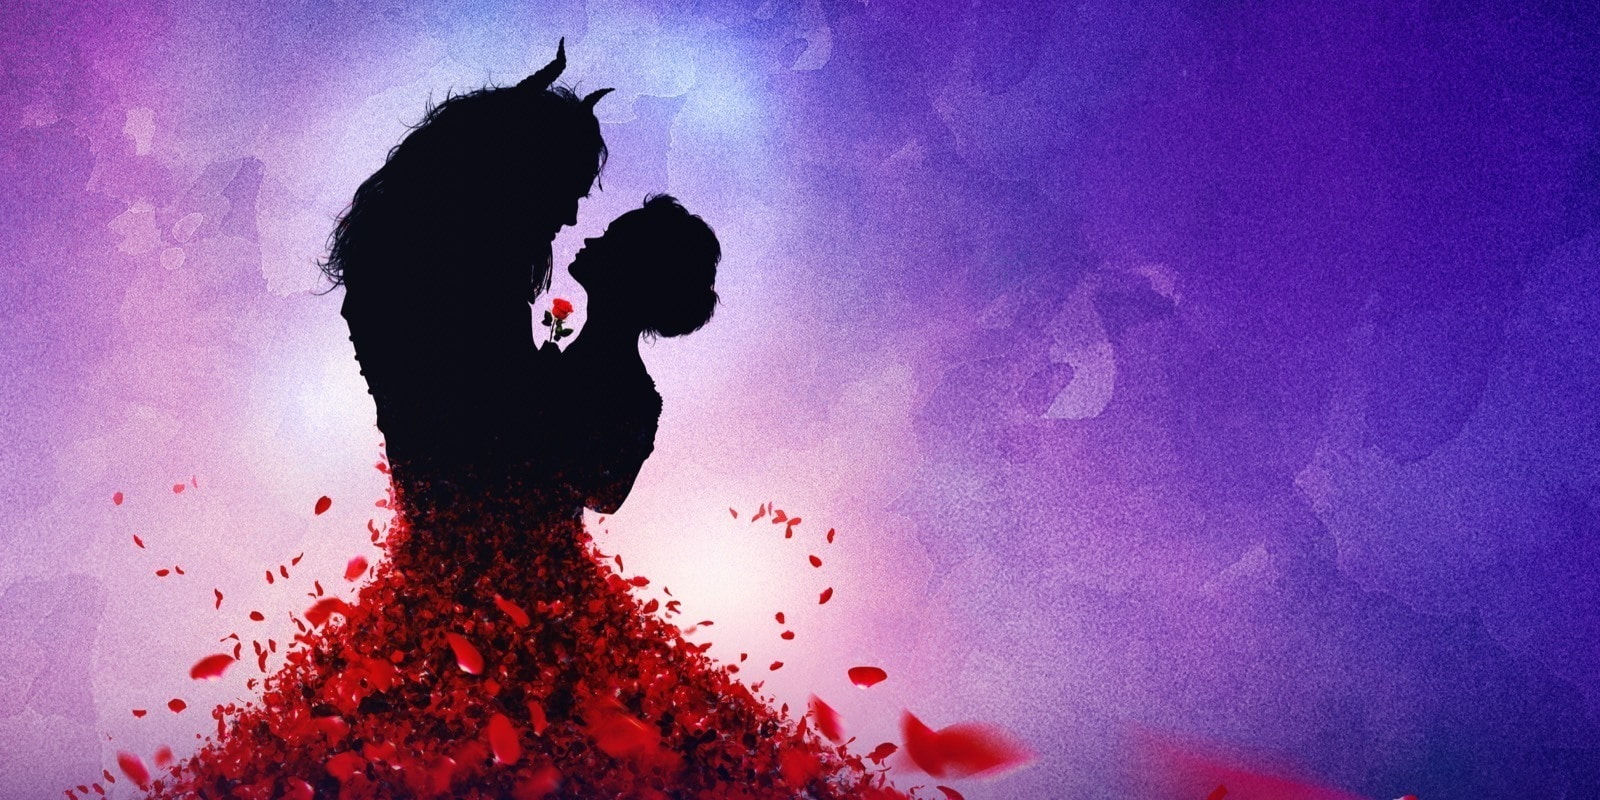 A silhouette of Belle and the Beast dancing, with red petals forming as Belle's dress skirt